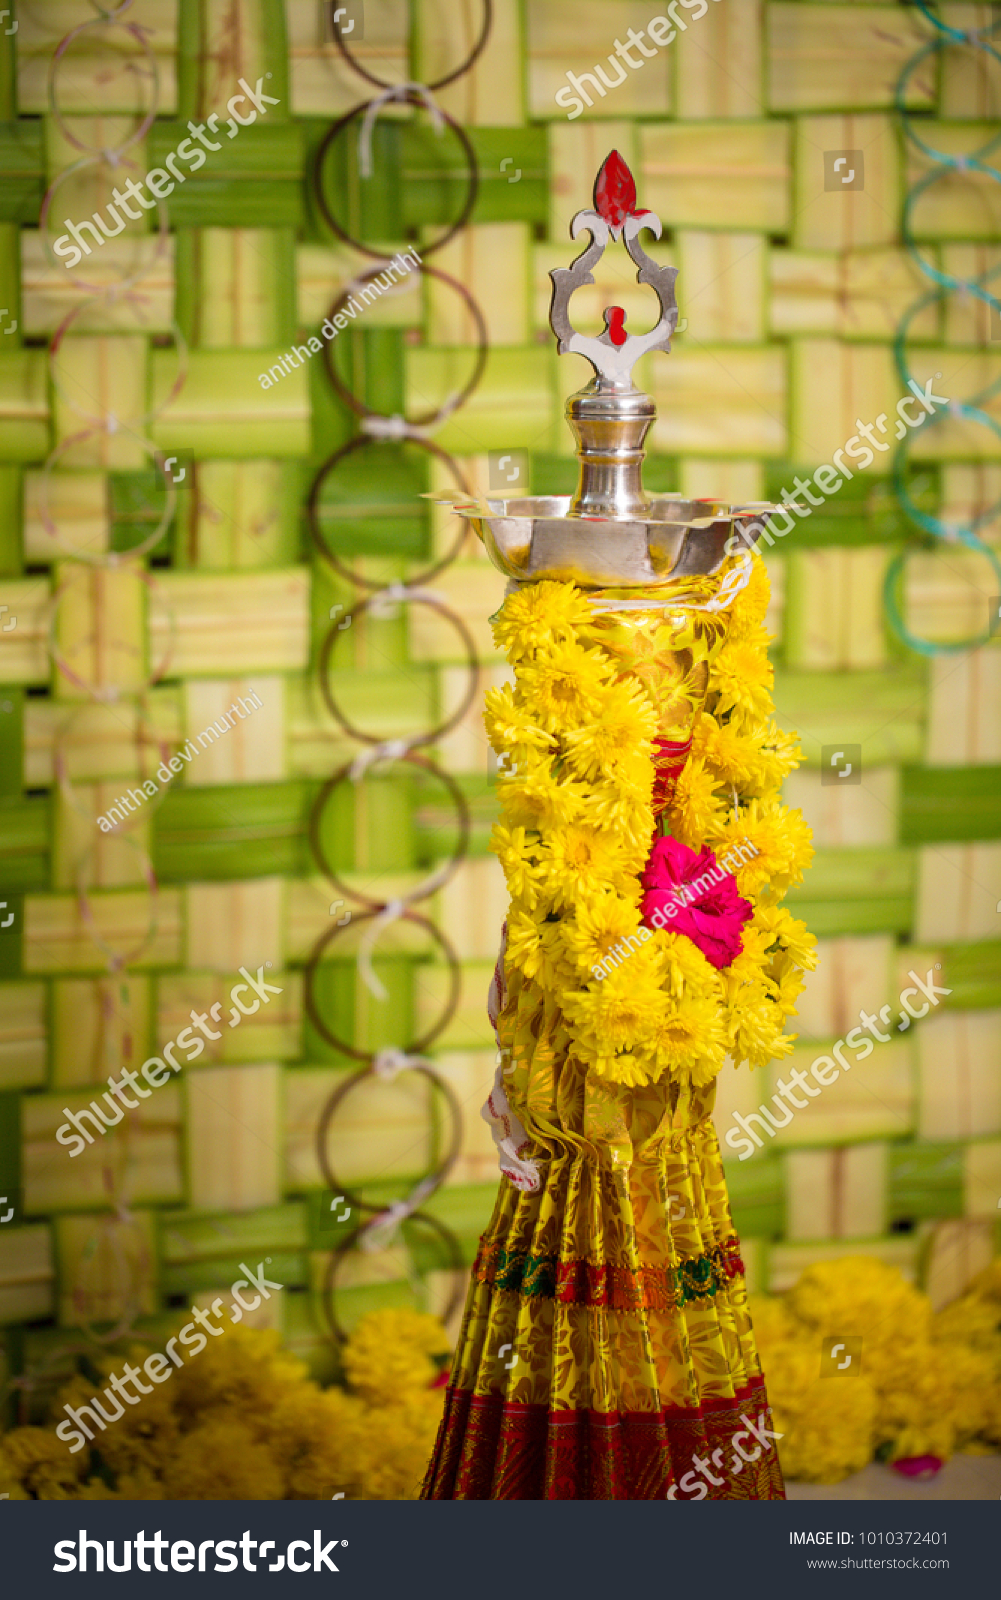 South Indian Decoration Baby Shower Festival Religion Stock Image 1010372401,Best Color Paint For Small Bedroom